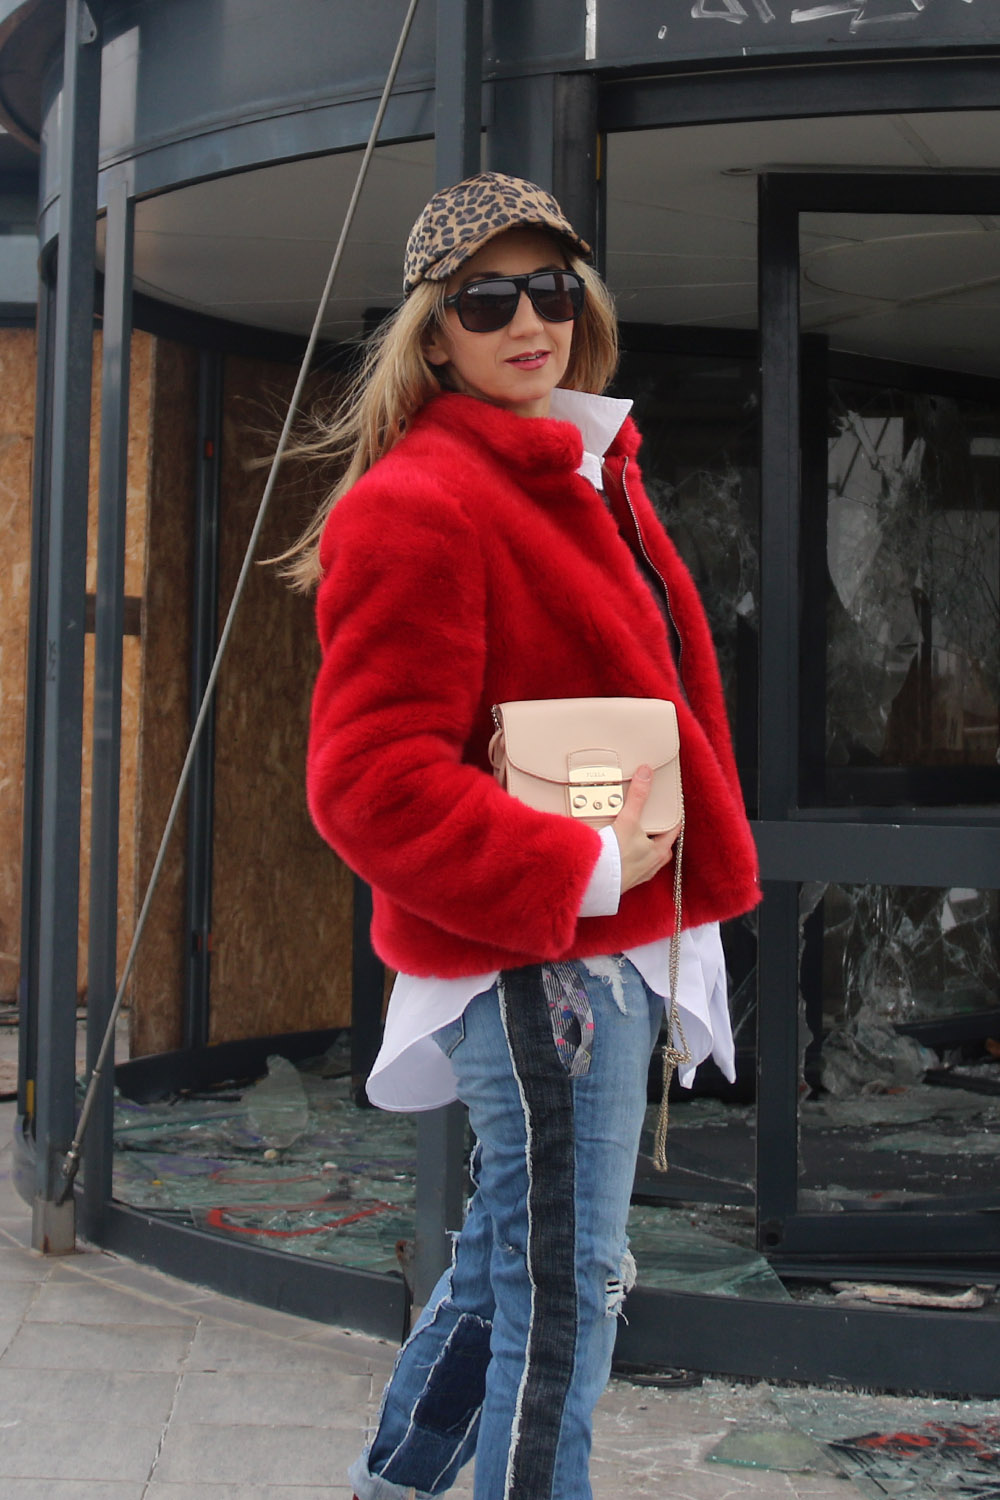 colourclub-fashionblog-outfit-fake-fur-coat-juan-carlos-gordillo-jeans-furla-bag4